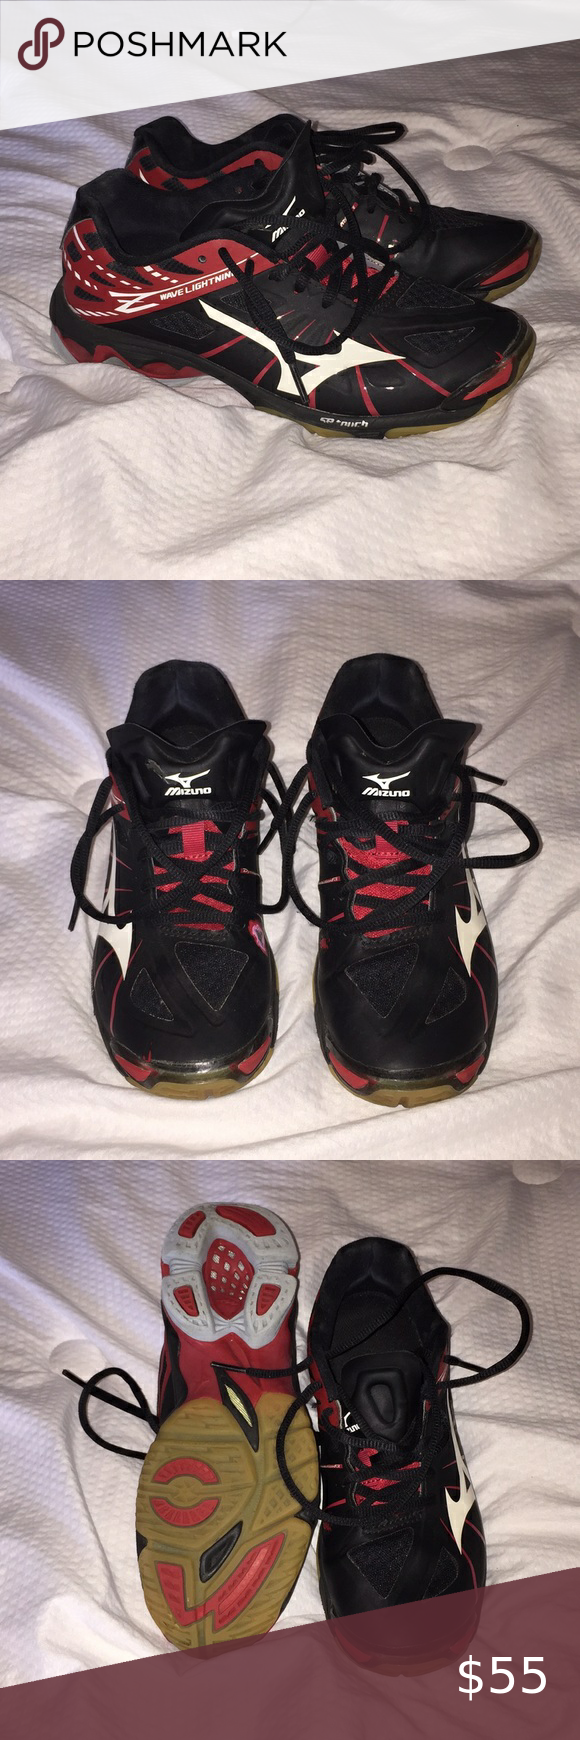 Mizuno Wave Lightning Volleyball Shoes In 2020 Volleyball Shoes Volleyball Sneakers Mizuno Shoes